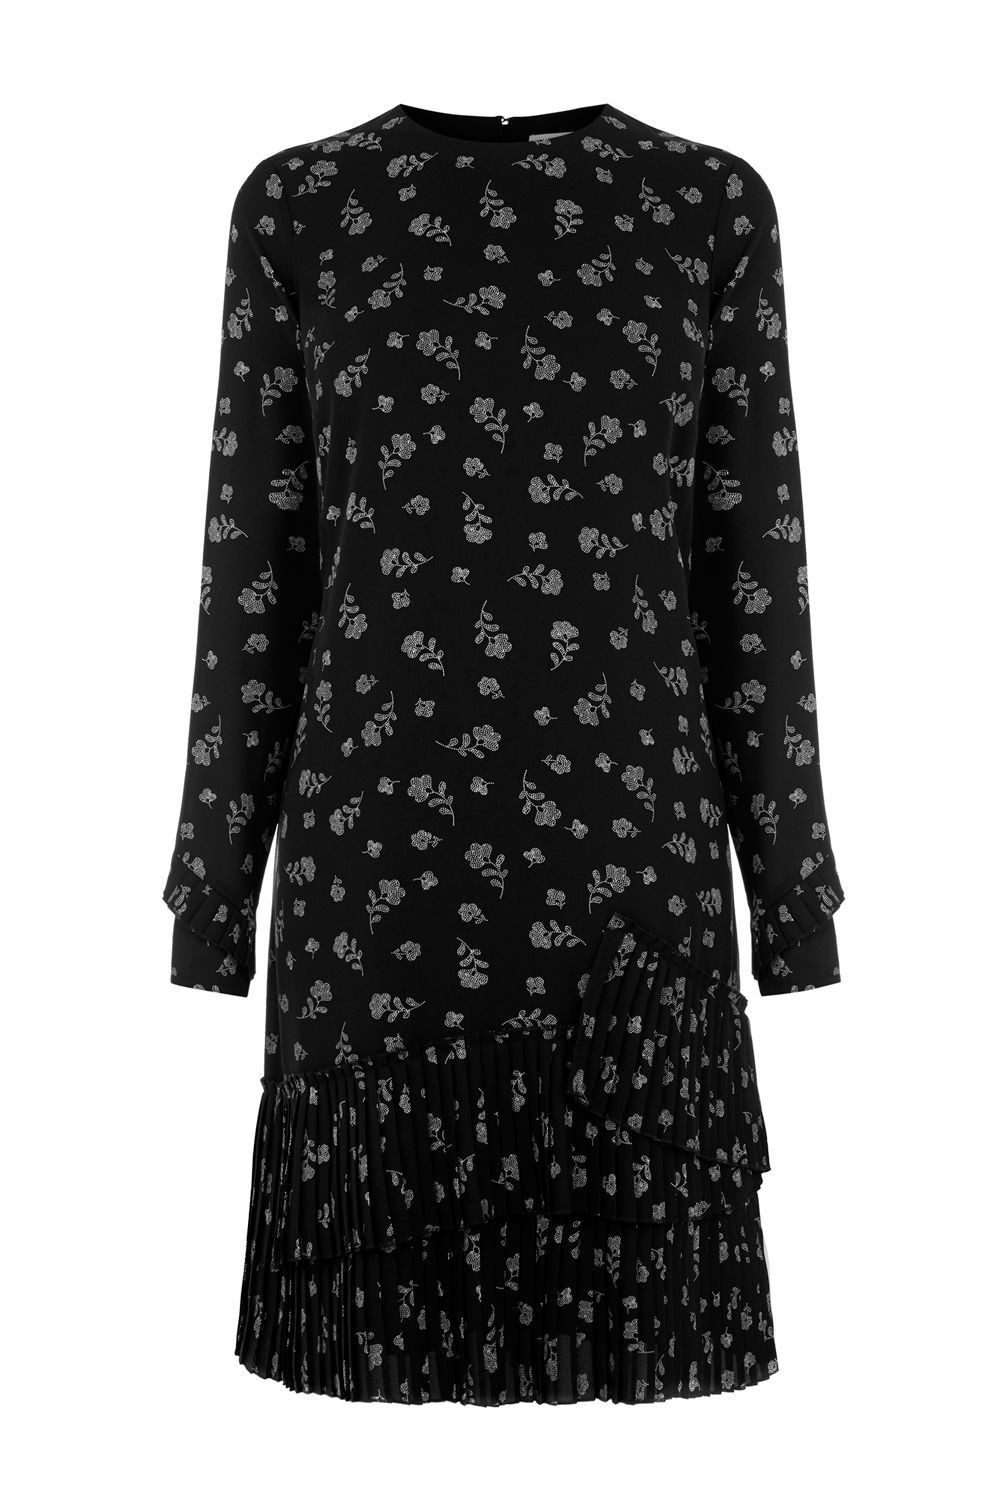 Dotty Floral Pleated Hem Dress, Black - style: shift; secondary colour: light grey; predominant colour: black; occasions: evening; length: just above the knee; fit: straight cut; fibres: polyester/polyamide - 100%; neckline: crew; sleeve length: long sleeve; sleeve style: standard; pattern type: fabric; pattern: patterned/print; texture group: other - light to midweight; season: a/w 2016; wardrobe: event